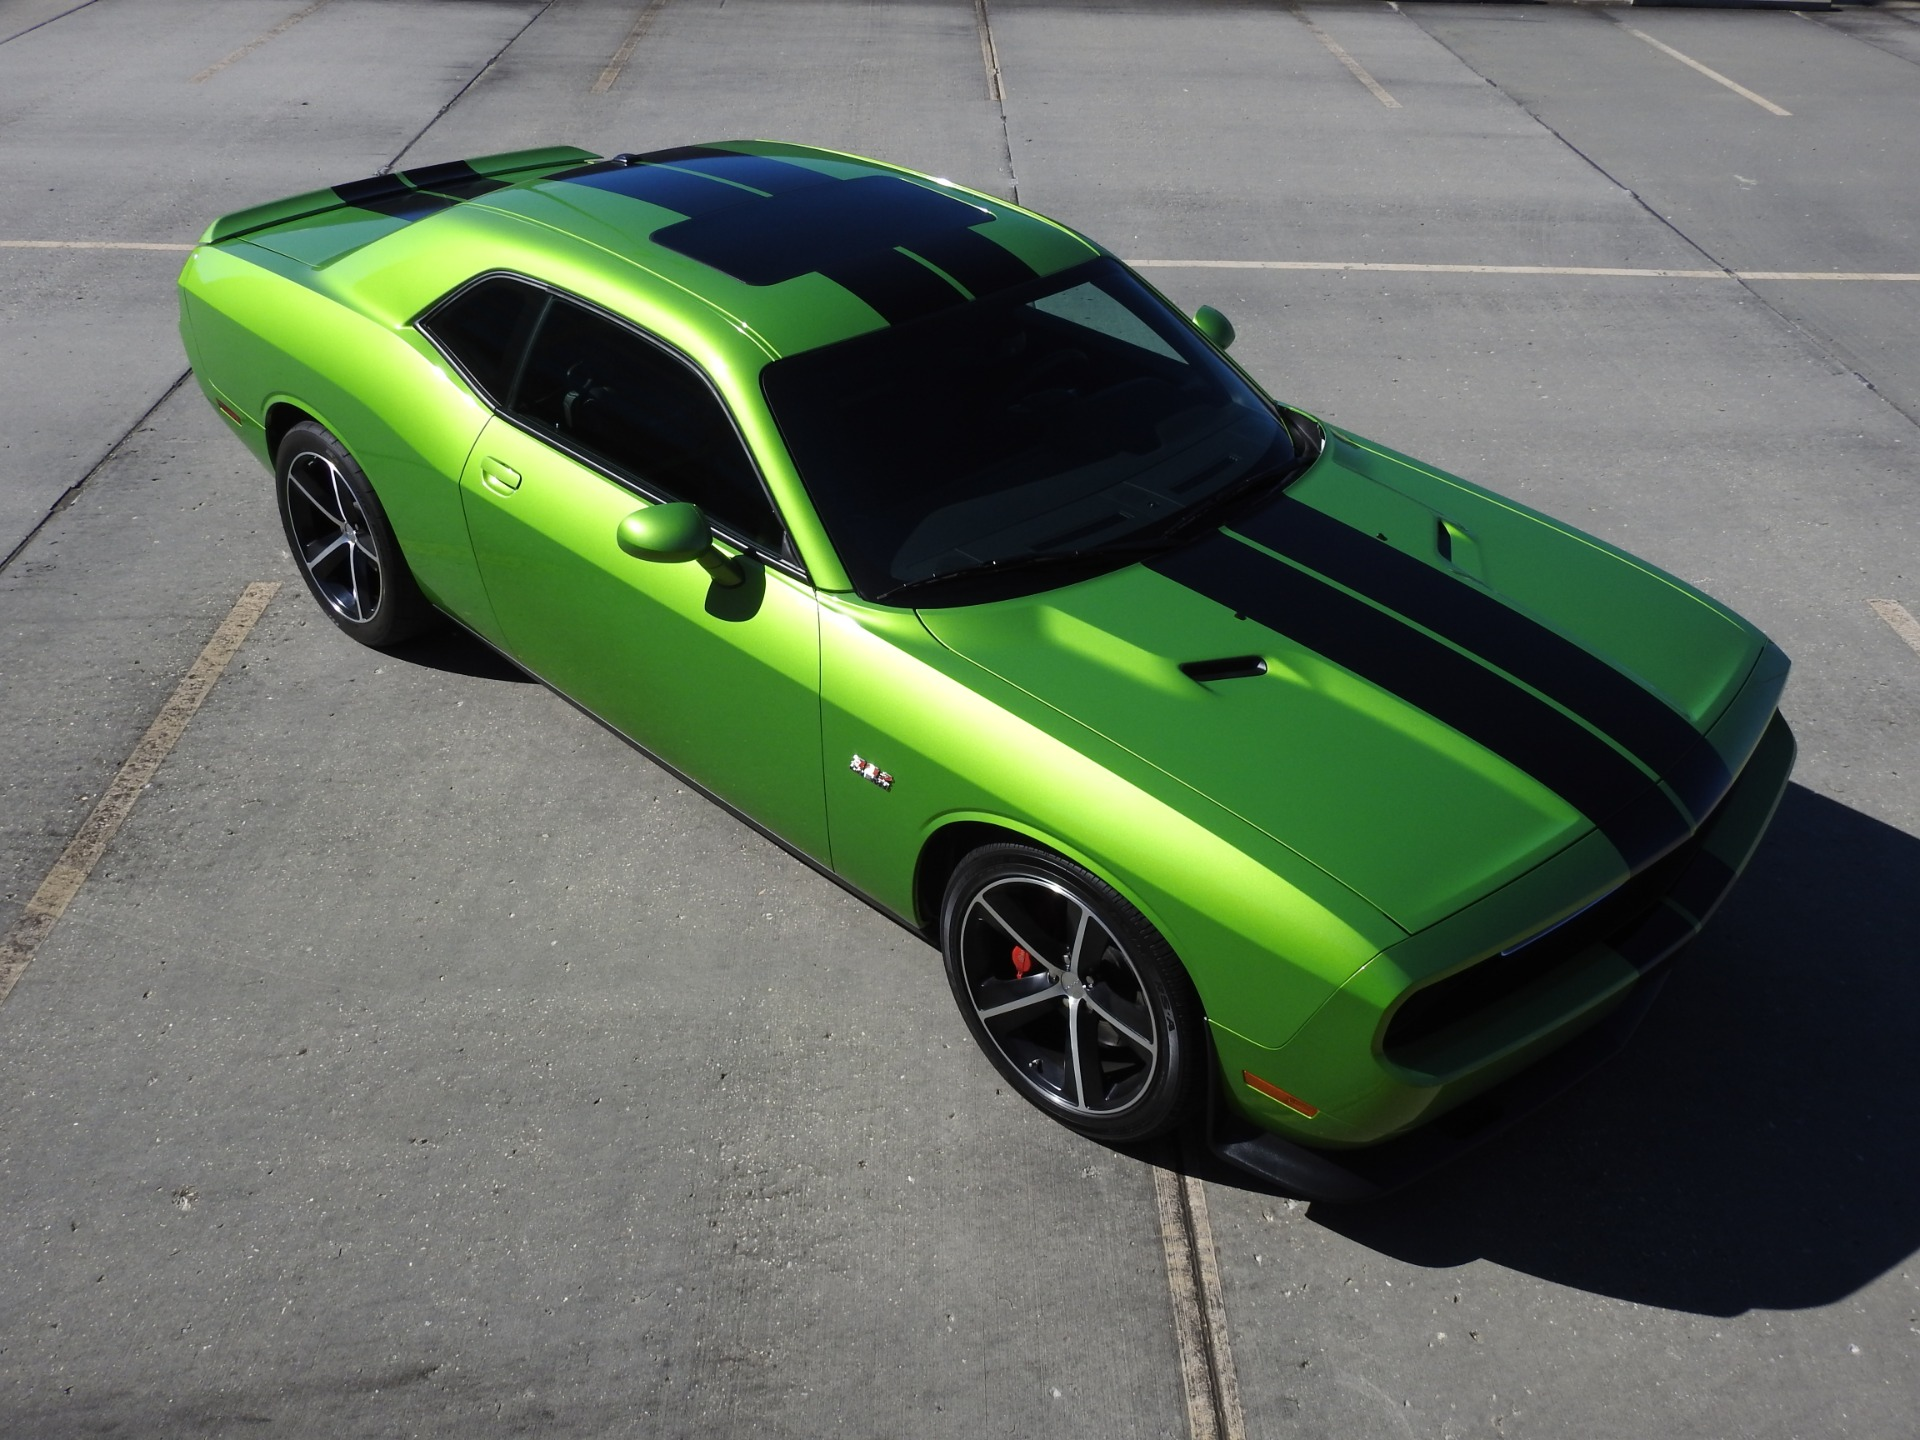 2011 Dodge Challenger Srt8 Stock H601408 For Sale Near Jackson Ms Ms Dodge Dealer